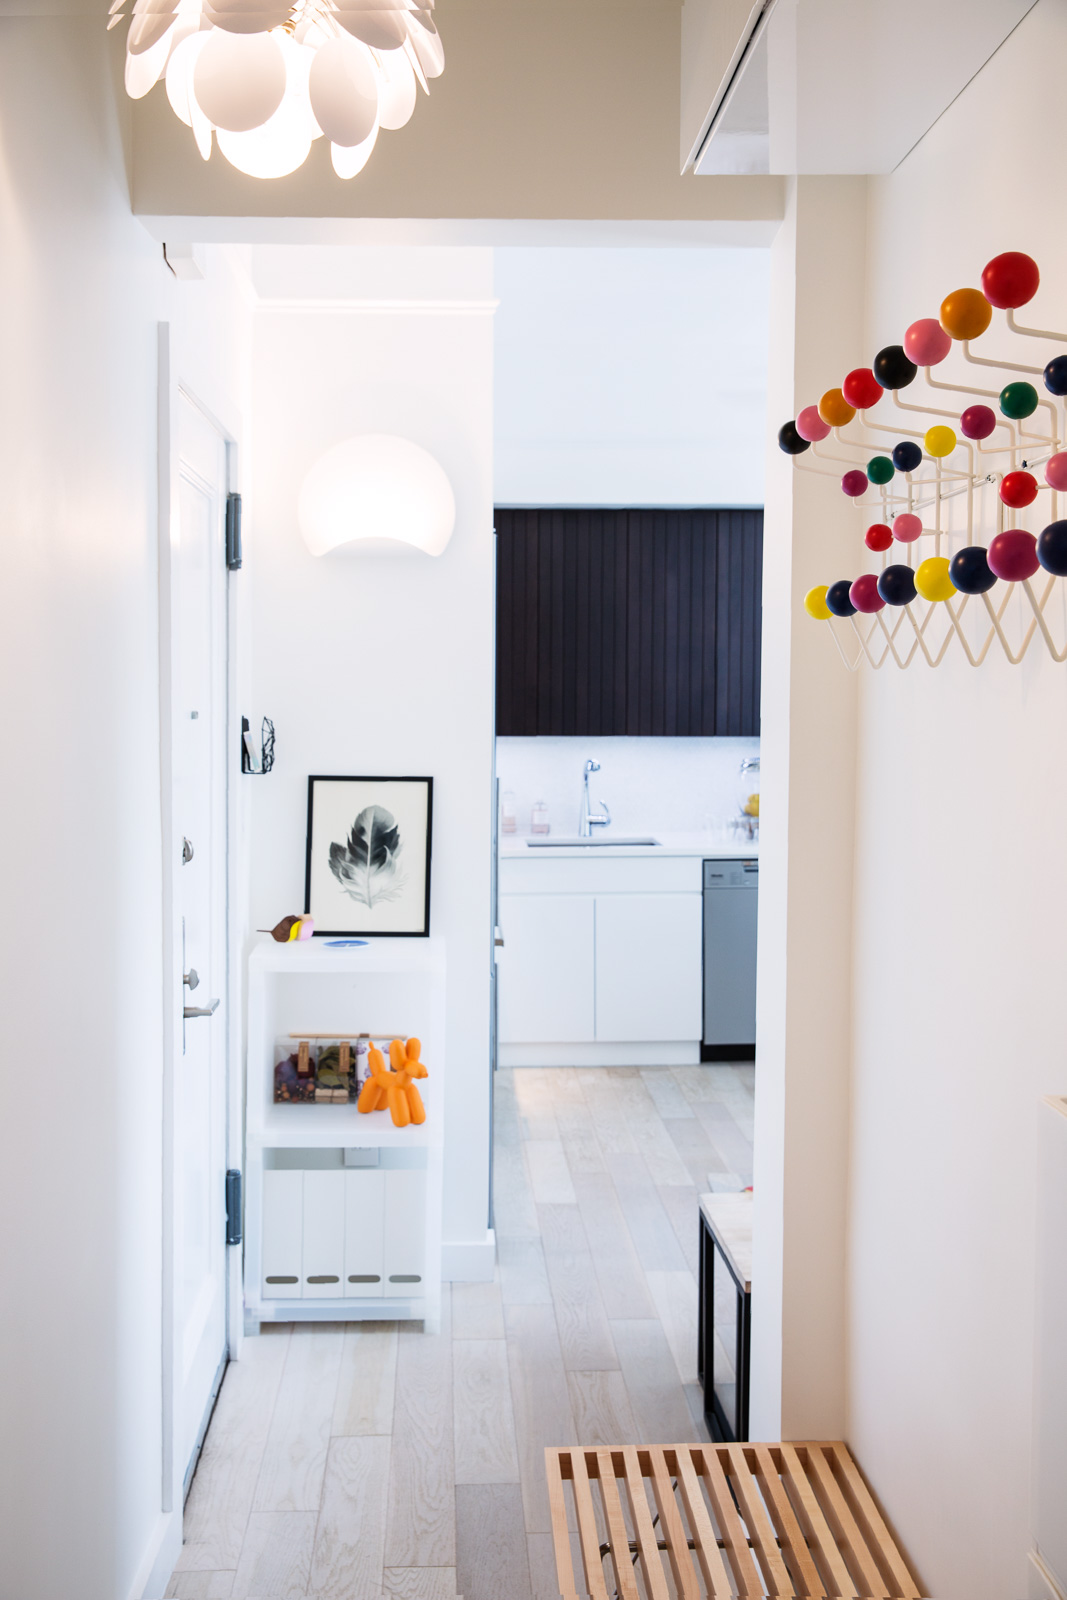 Compact kitchen design for New York City apartment